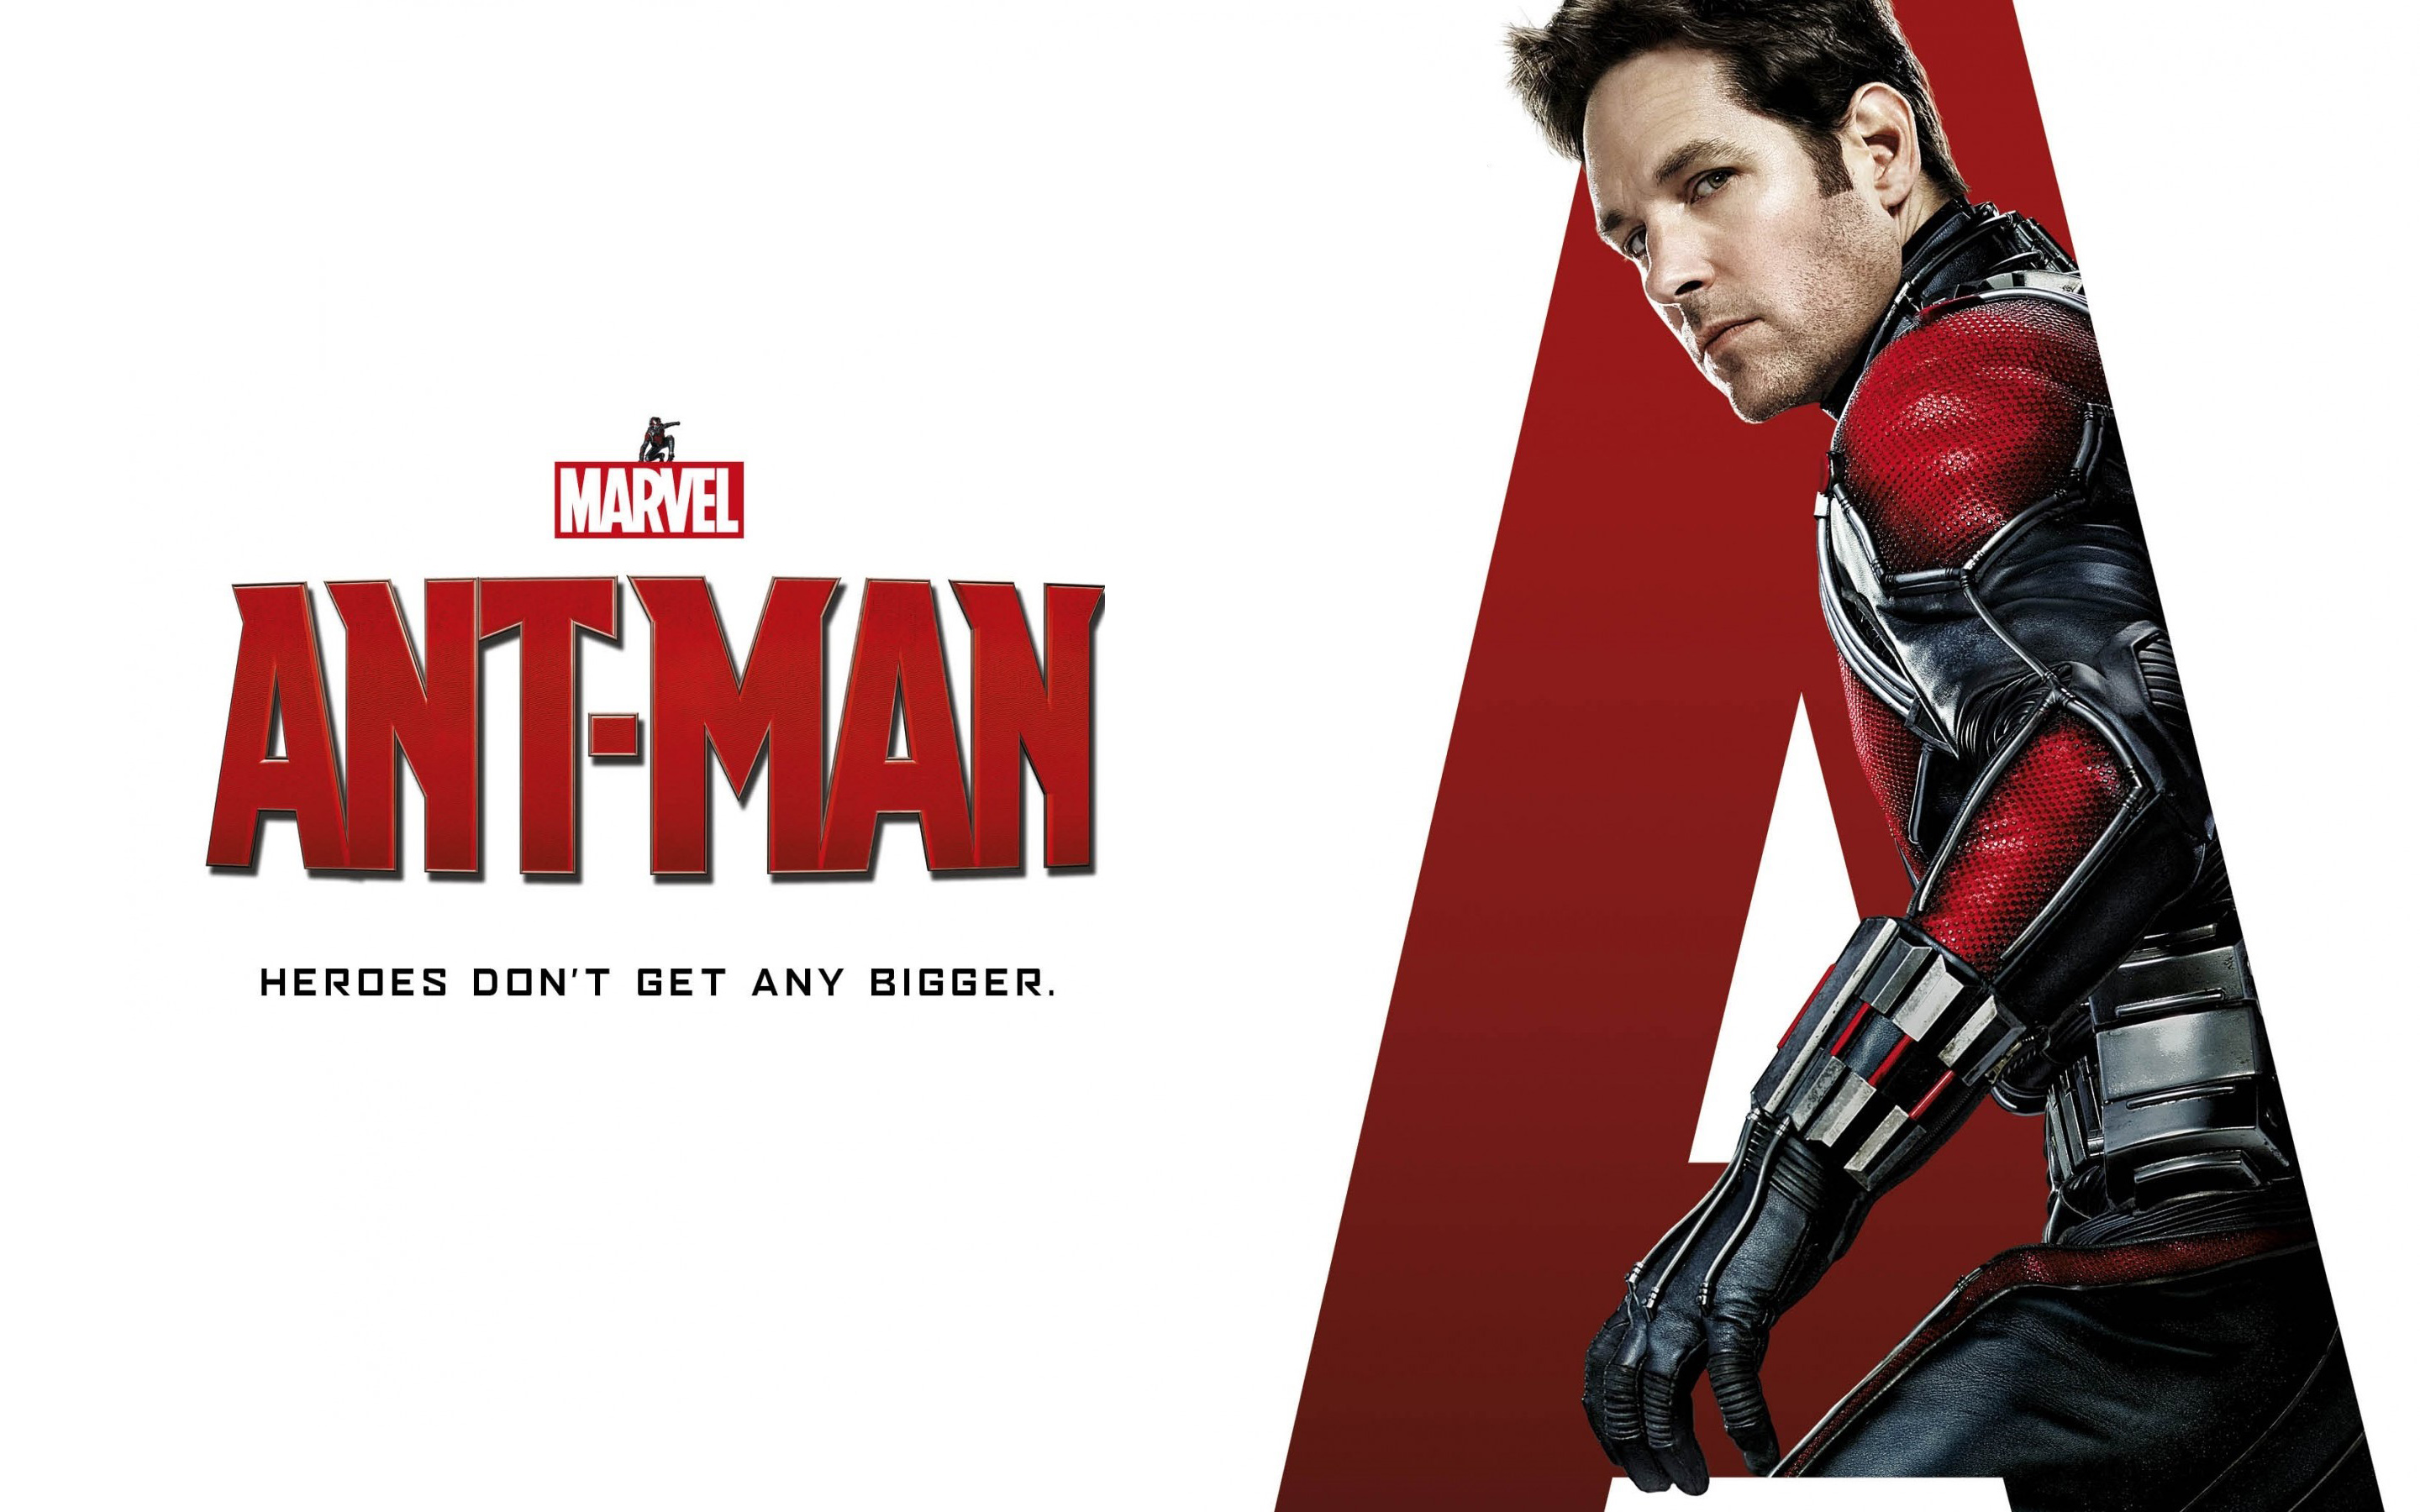 Paul Rudd Ant Man Wallpapers HD Wallpapers 2880x1800